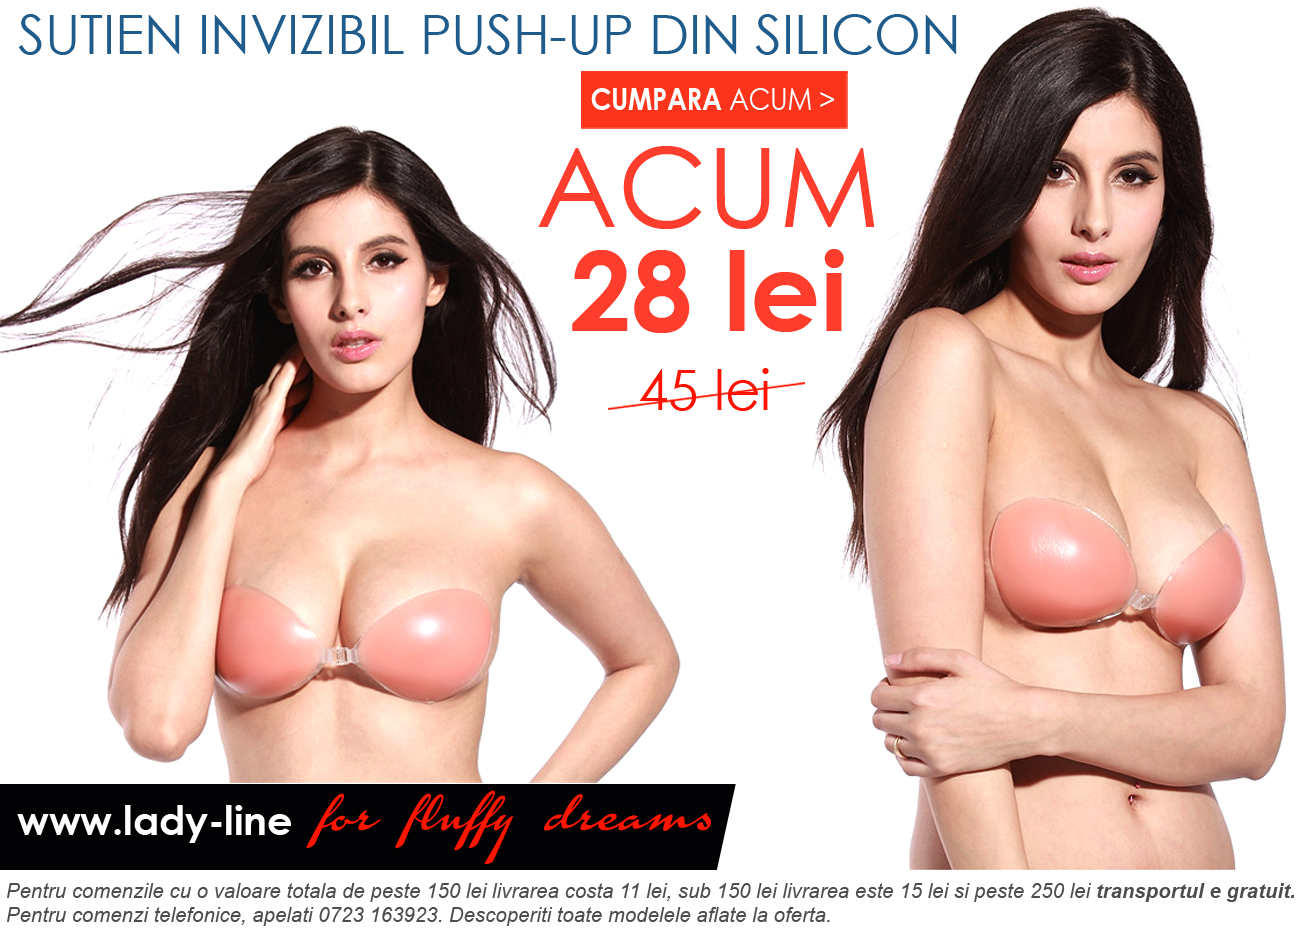 Sutien Invizibil Push-Up Din Silicon